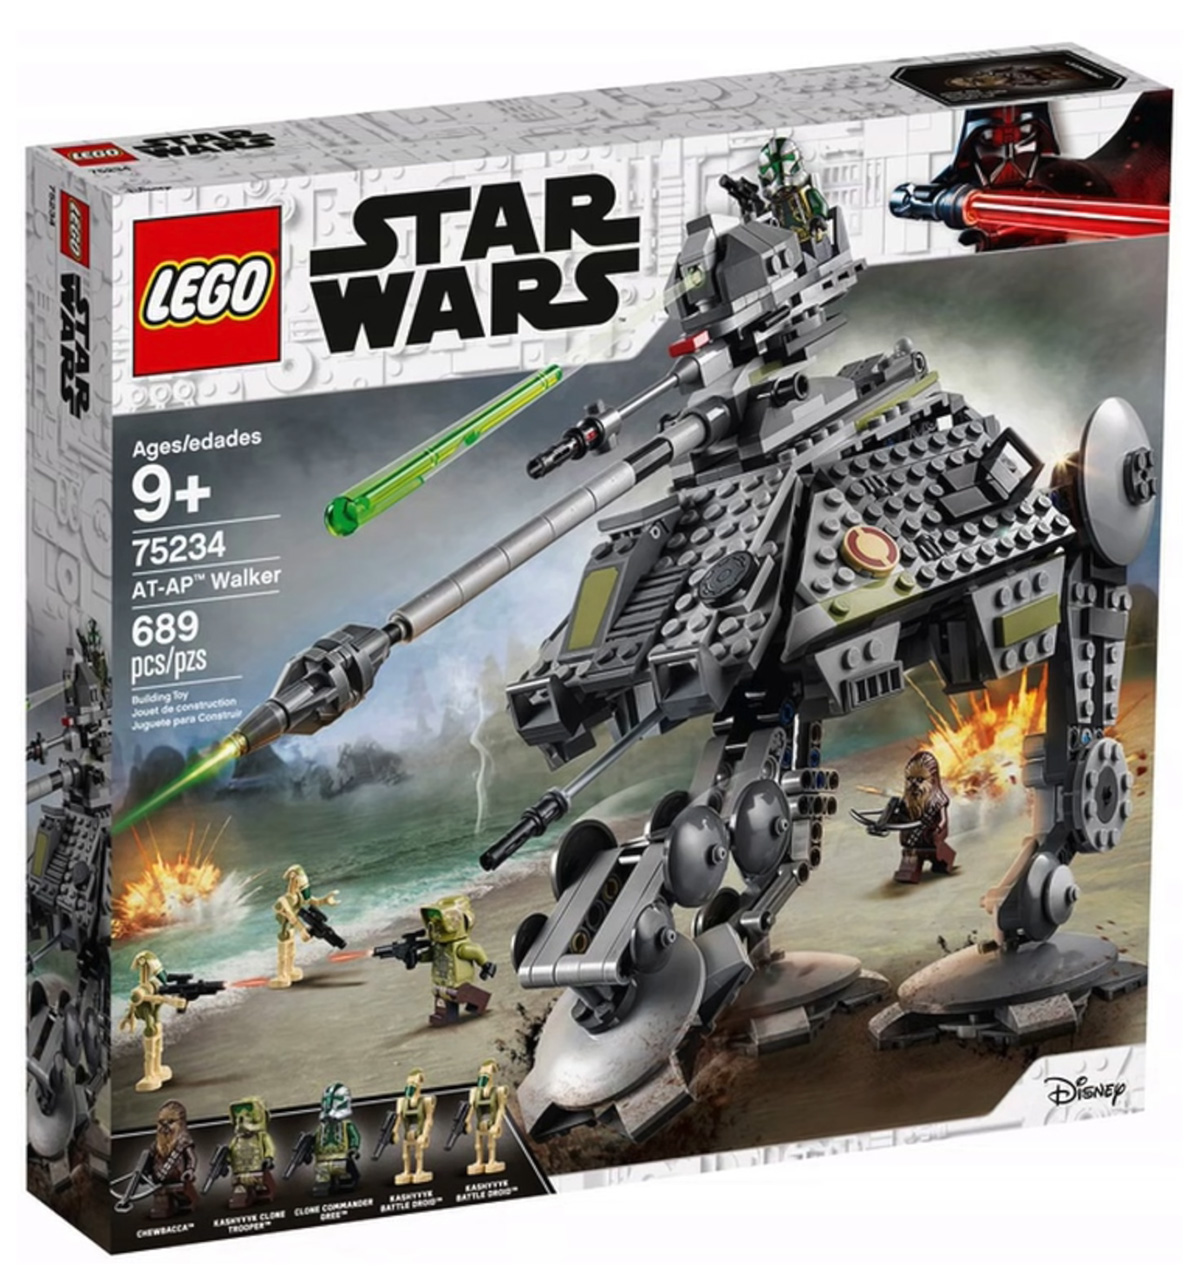 Lego Star Wars 2019 017 Outer Rim News